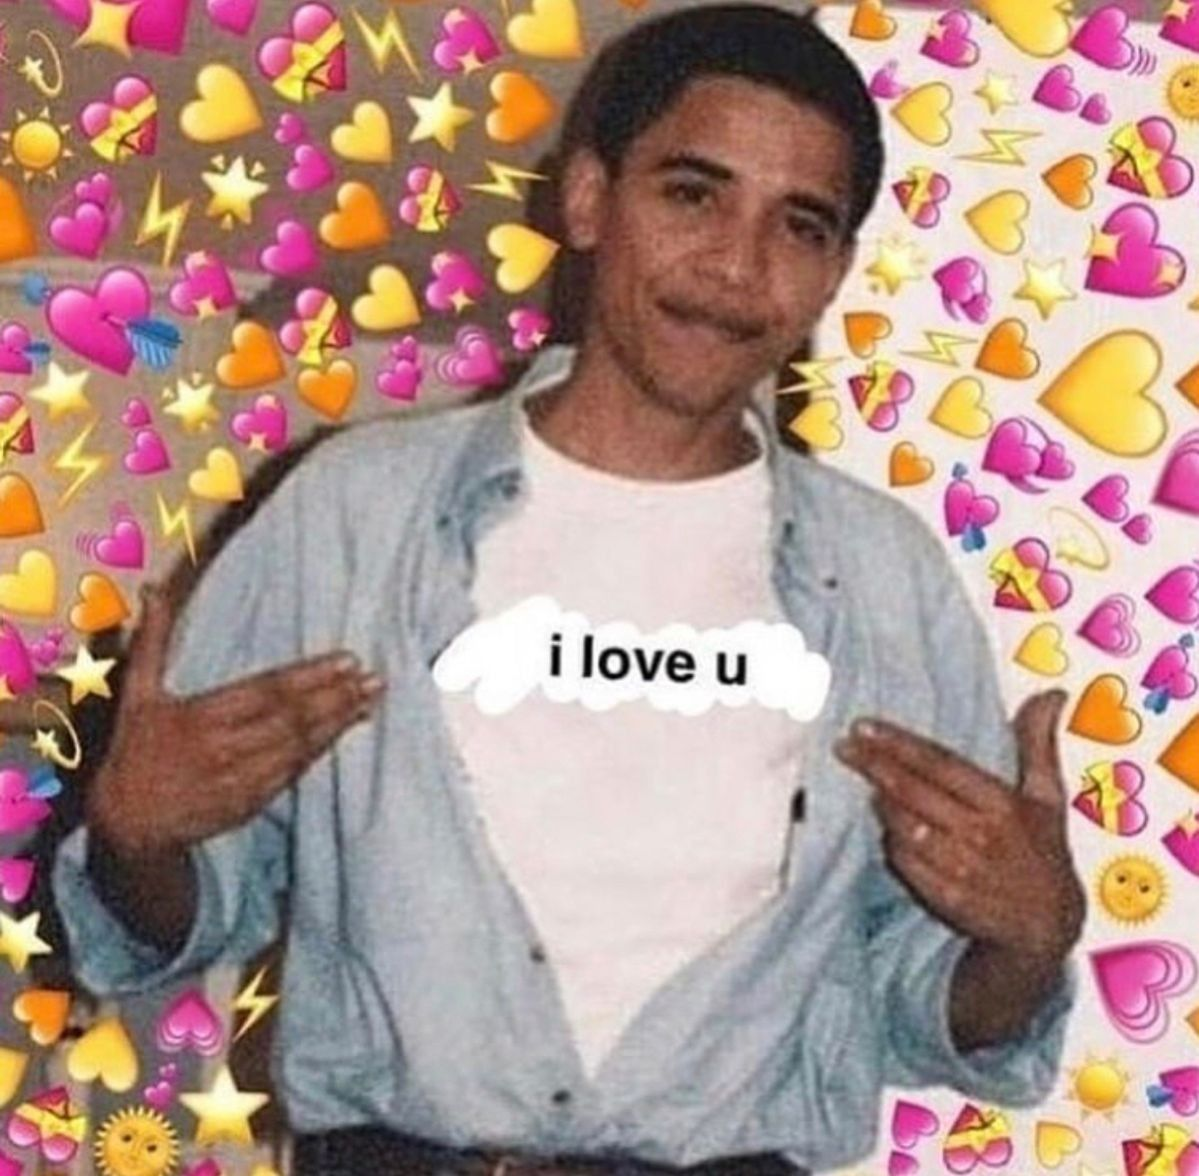 Is That Obama Crushmemes Cute Love Memes Love Memes Wholesome Memes